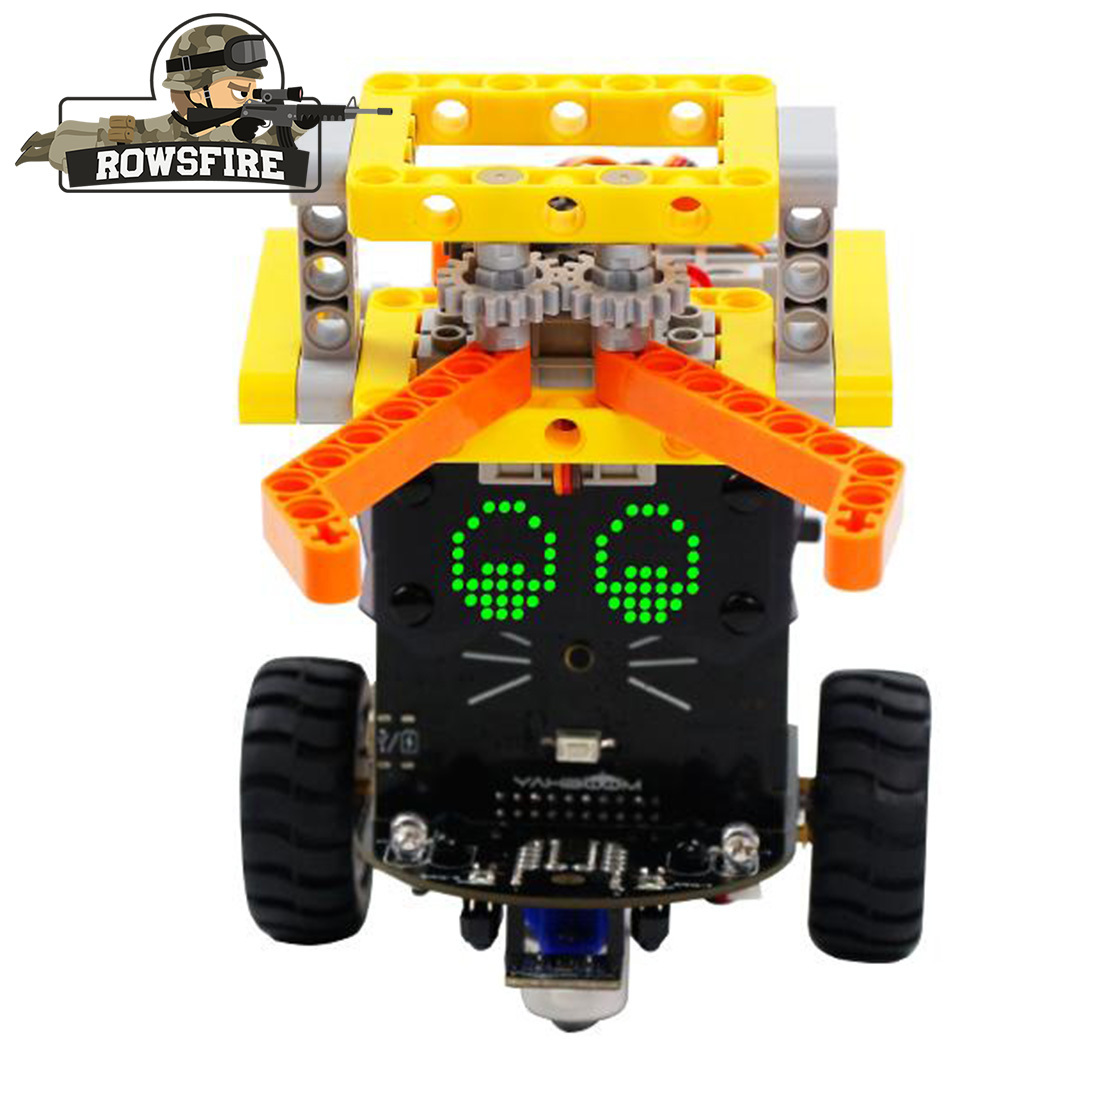 High Recommend 1 Set Fighting Version Omibox Scratch Programmable Robot Car Kit Toy Games For Children Adult Creative Gift